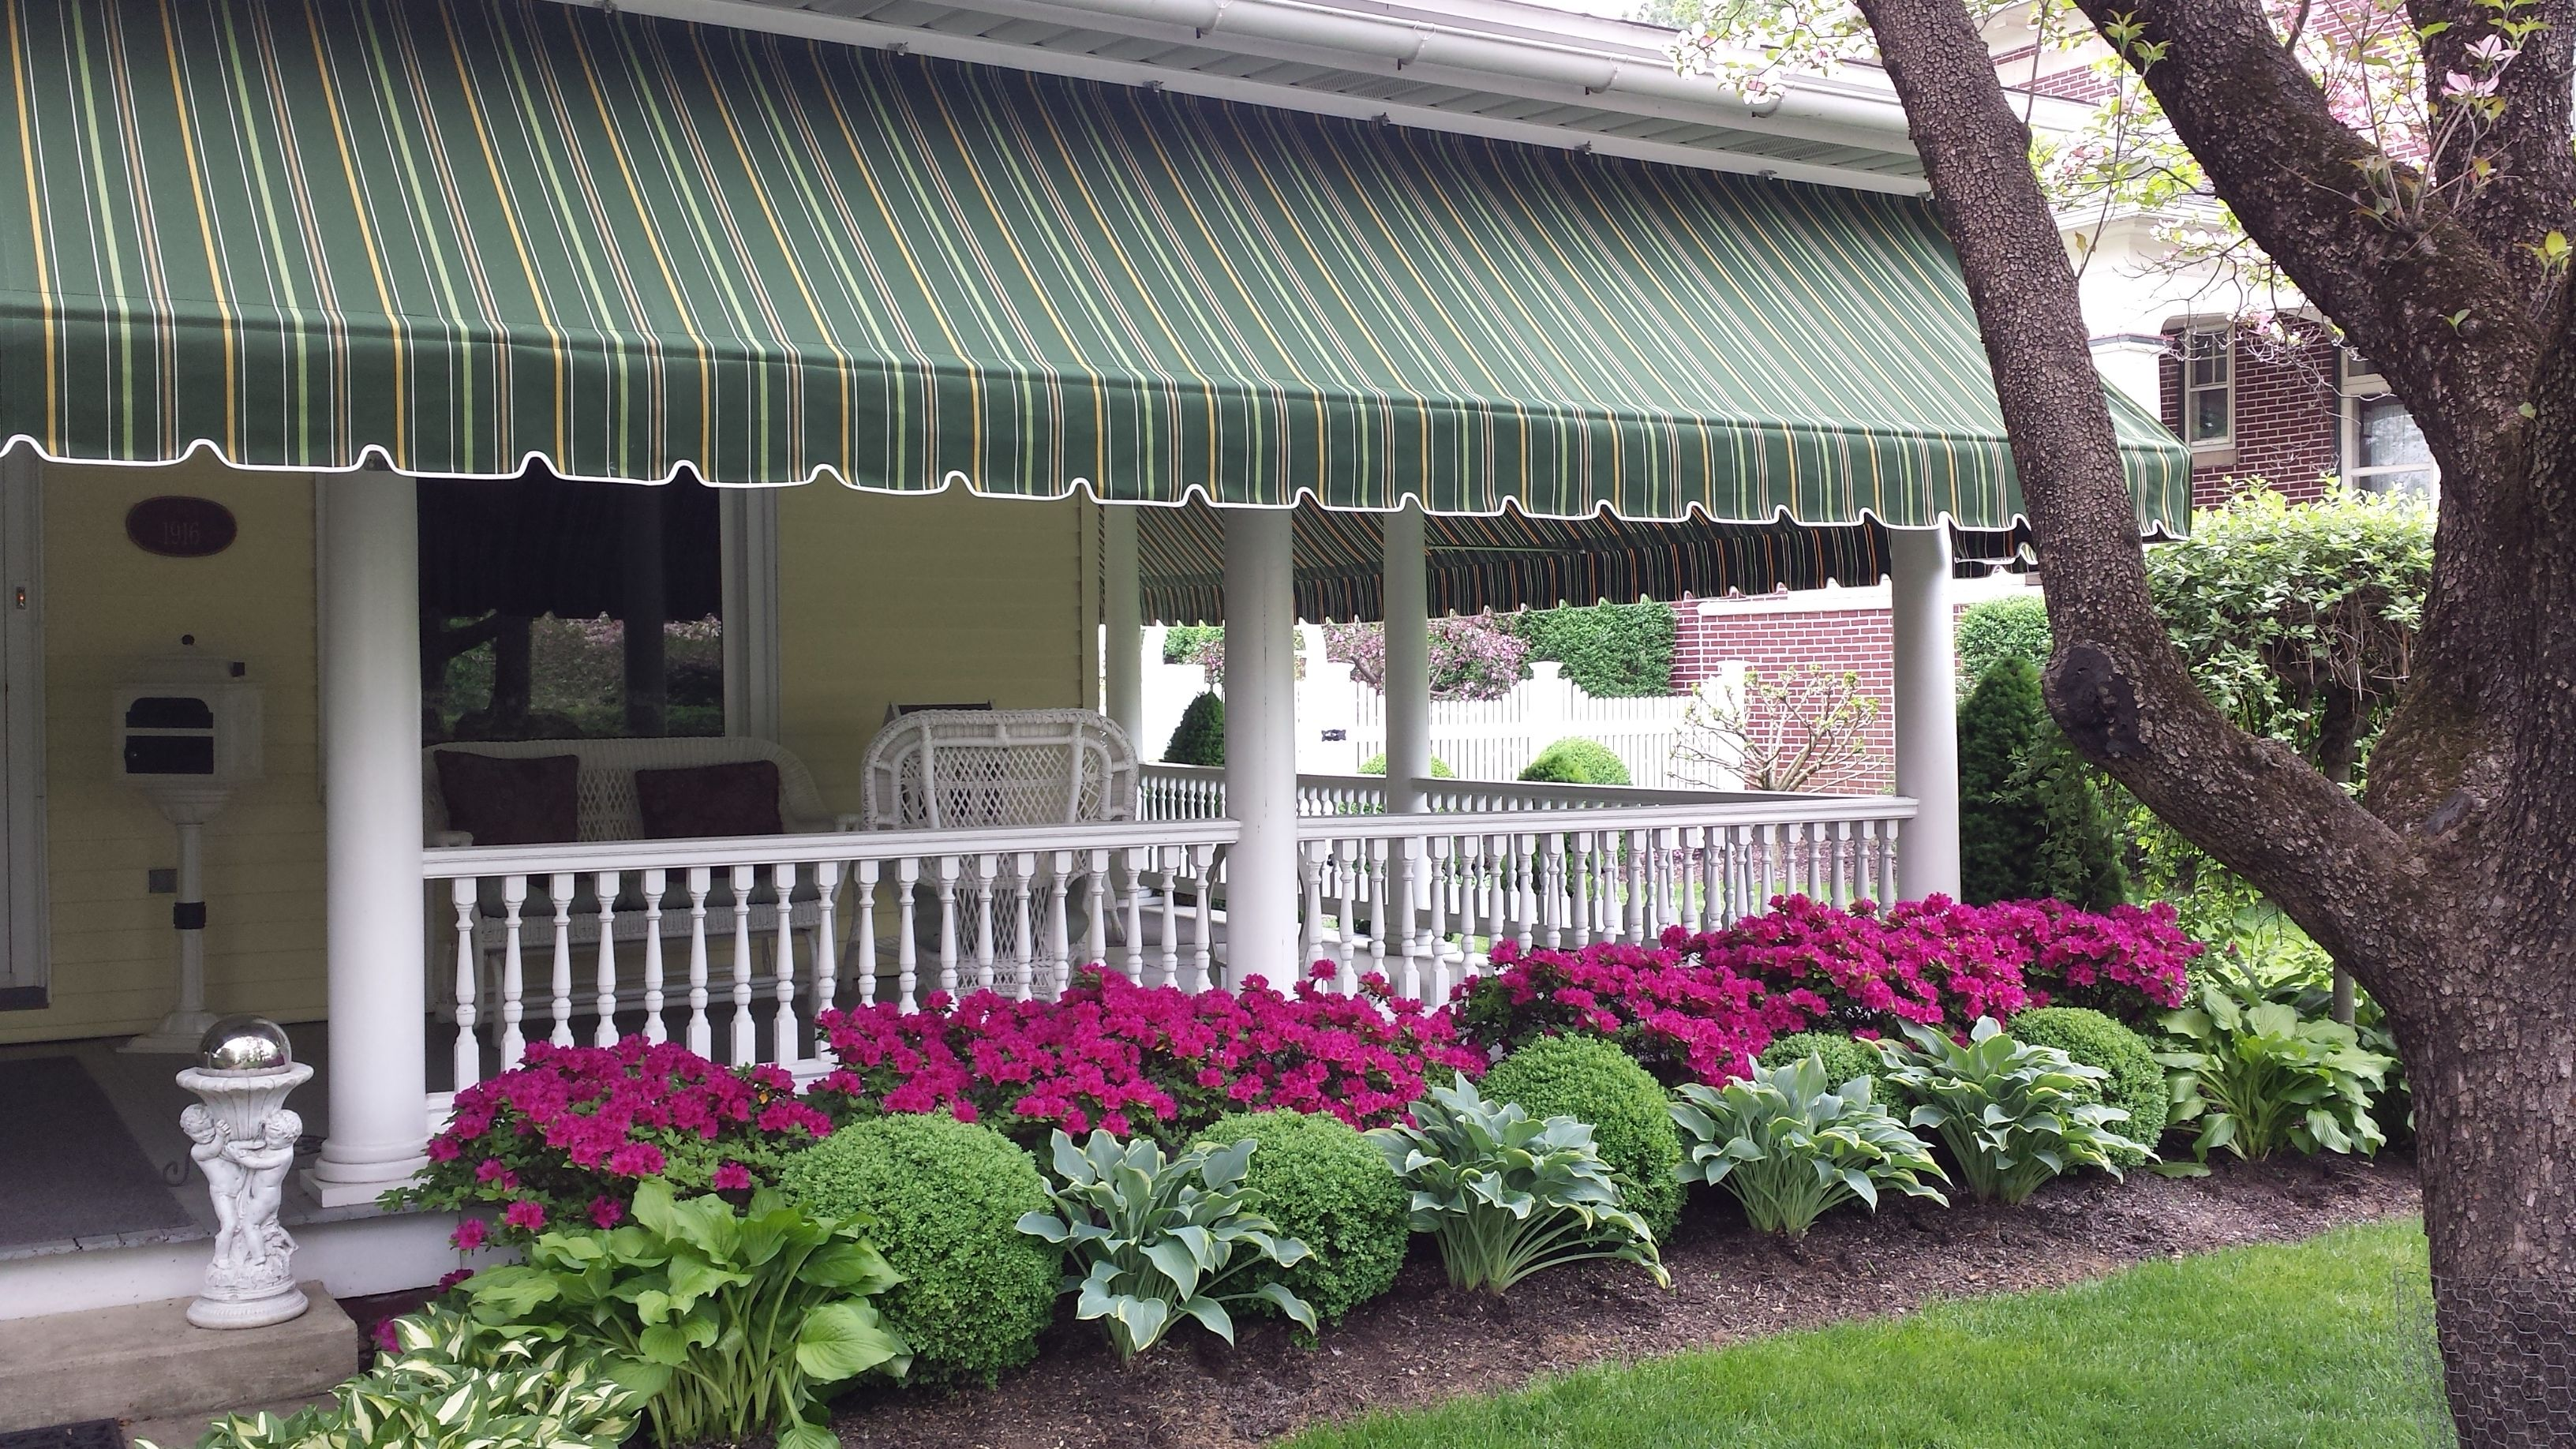 Beautiful striped Sunbrella porch awning | Awning | Pinterest ...